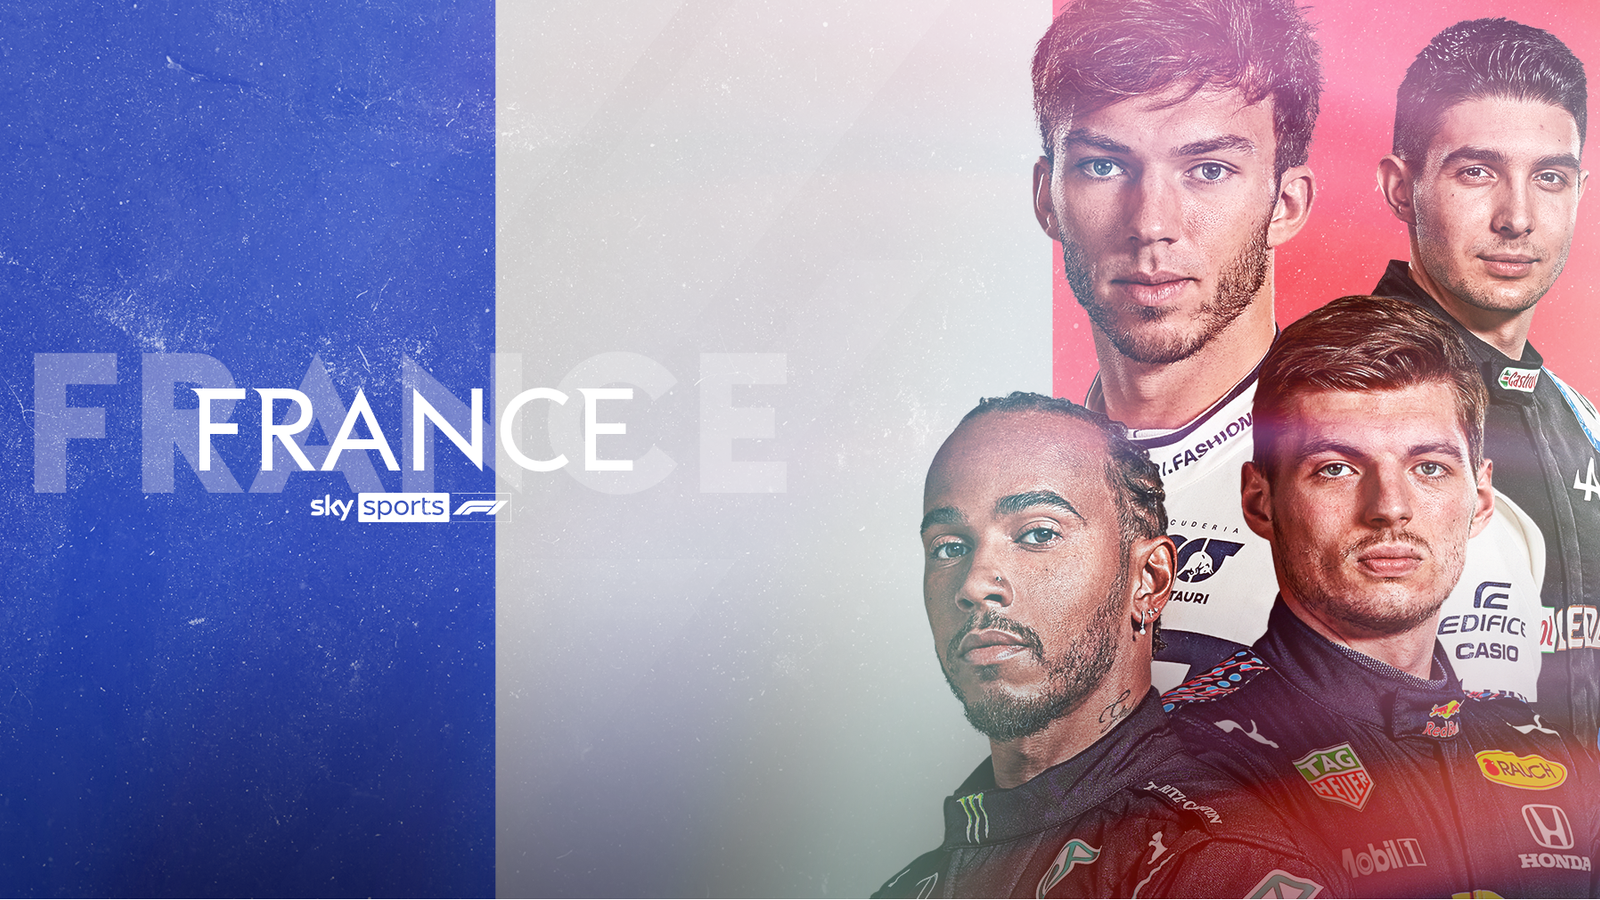 French GP: When to watch the race, qualifying and practice live on Sky Sports F1 this weekend